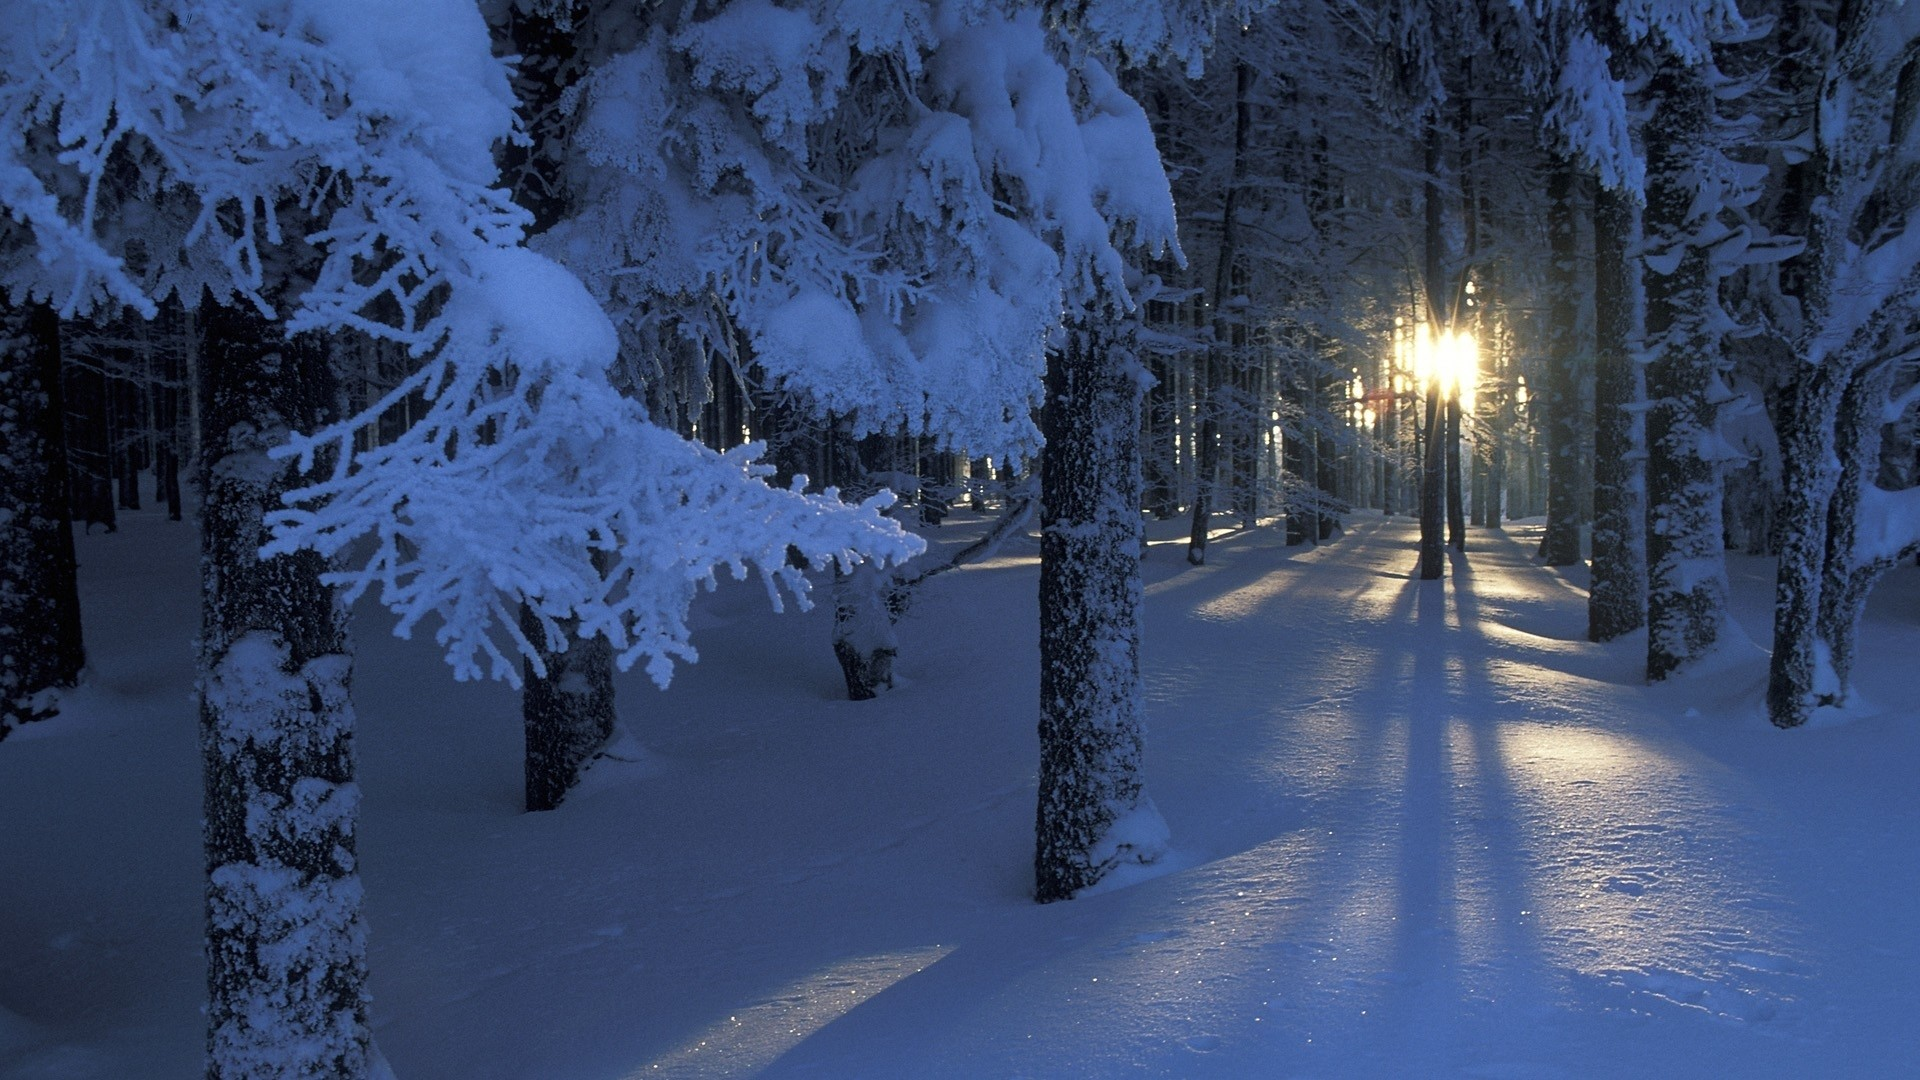 1920x1080 Winter forest - photo wallpapers, pictures in the winter forest / Страница 3